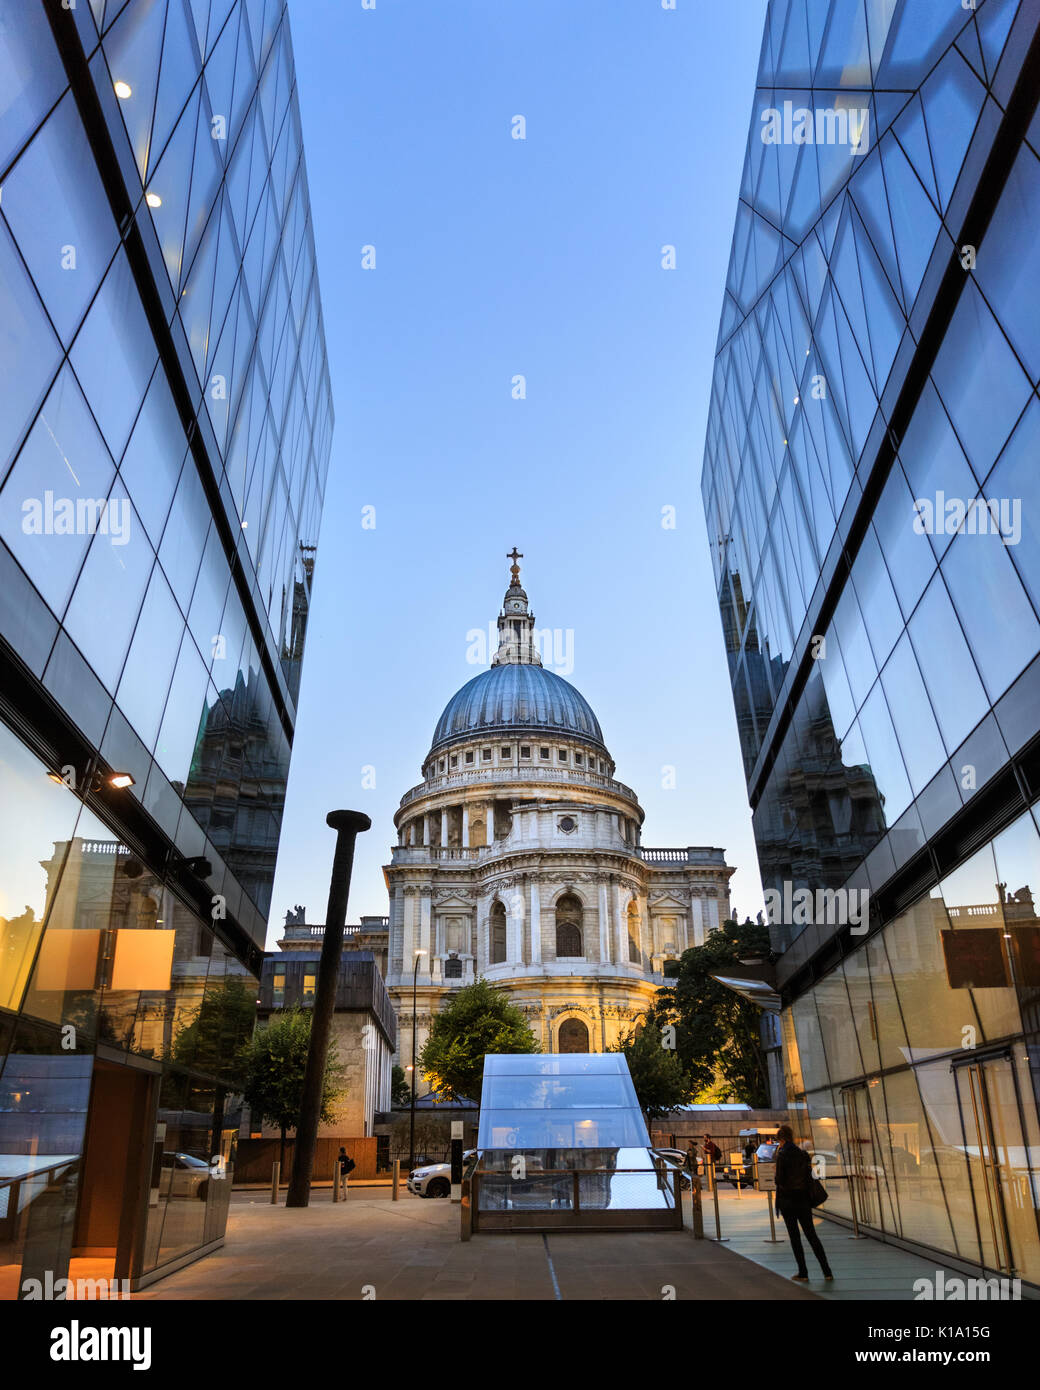 Blue hour evening view of St Paul's Cathedral from One New Change, London - Stock Image